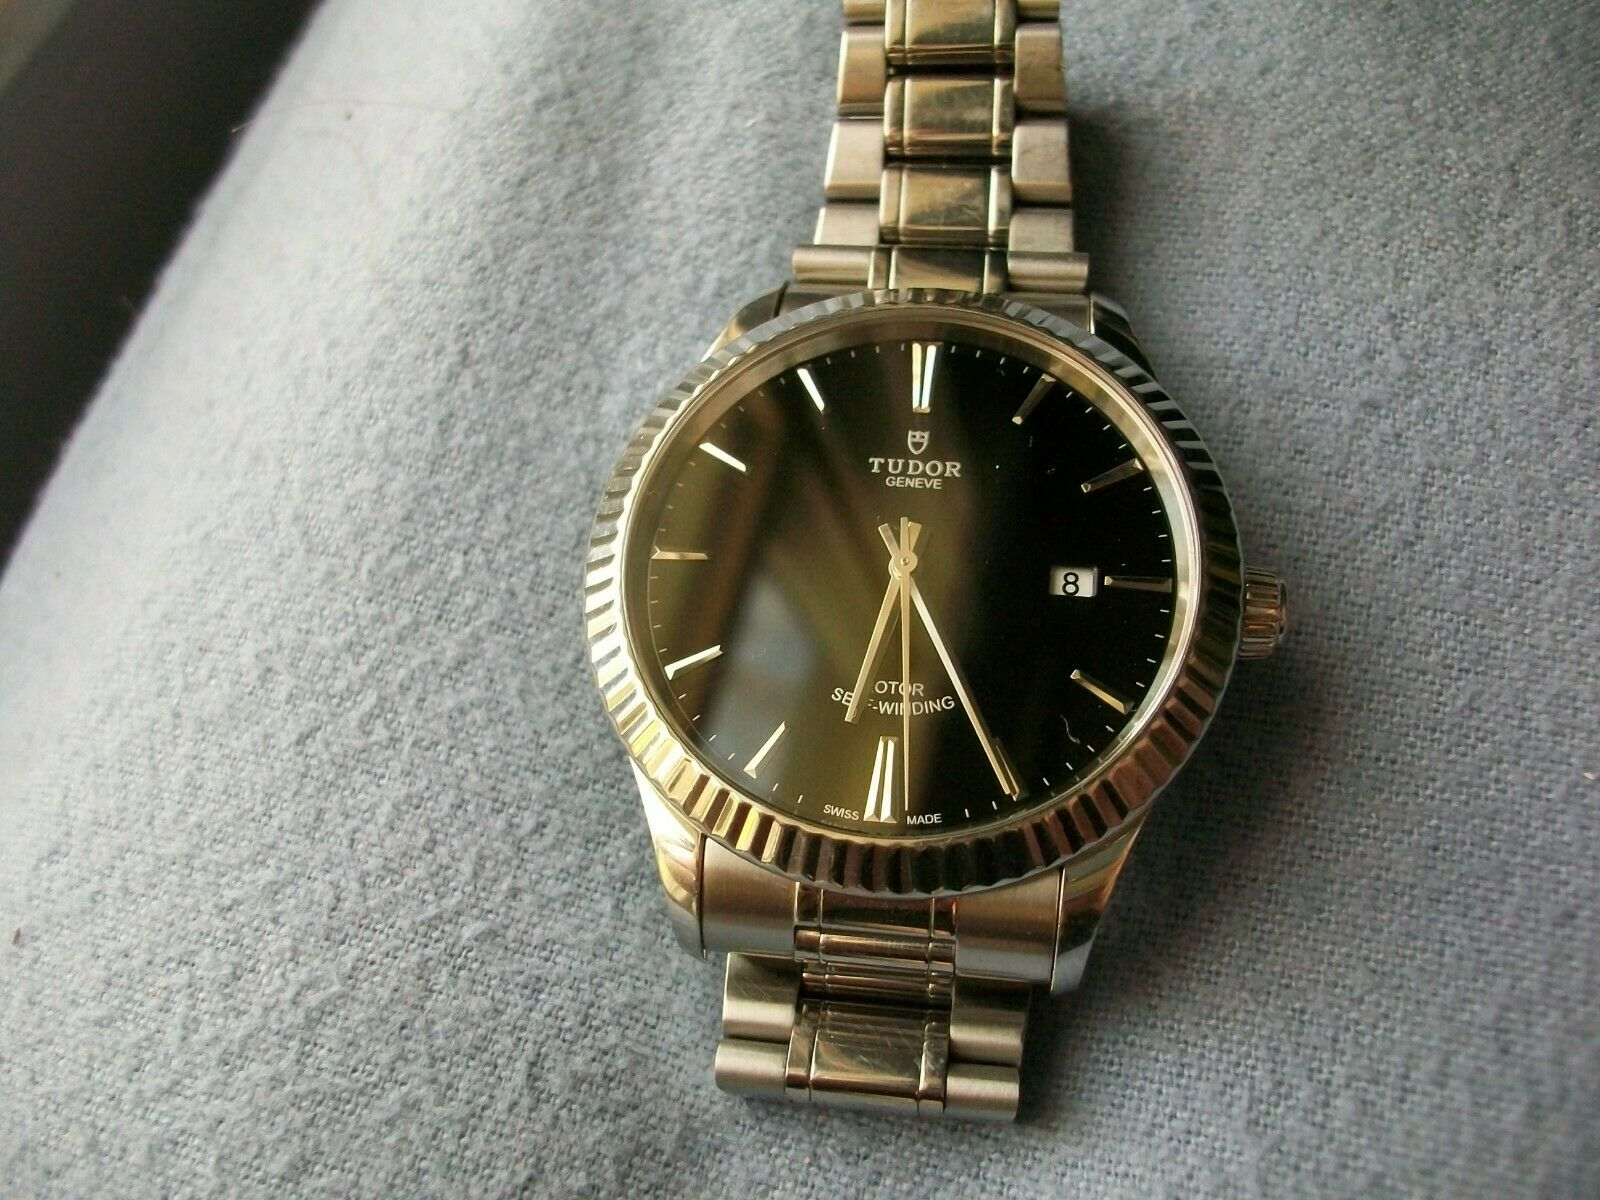 Tudor Style 41mm Stainless Steel with Black face.